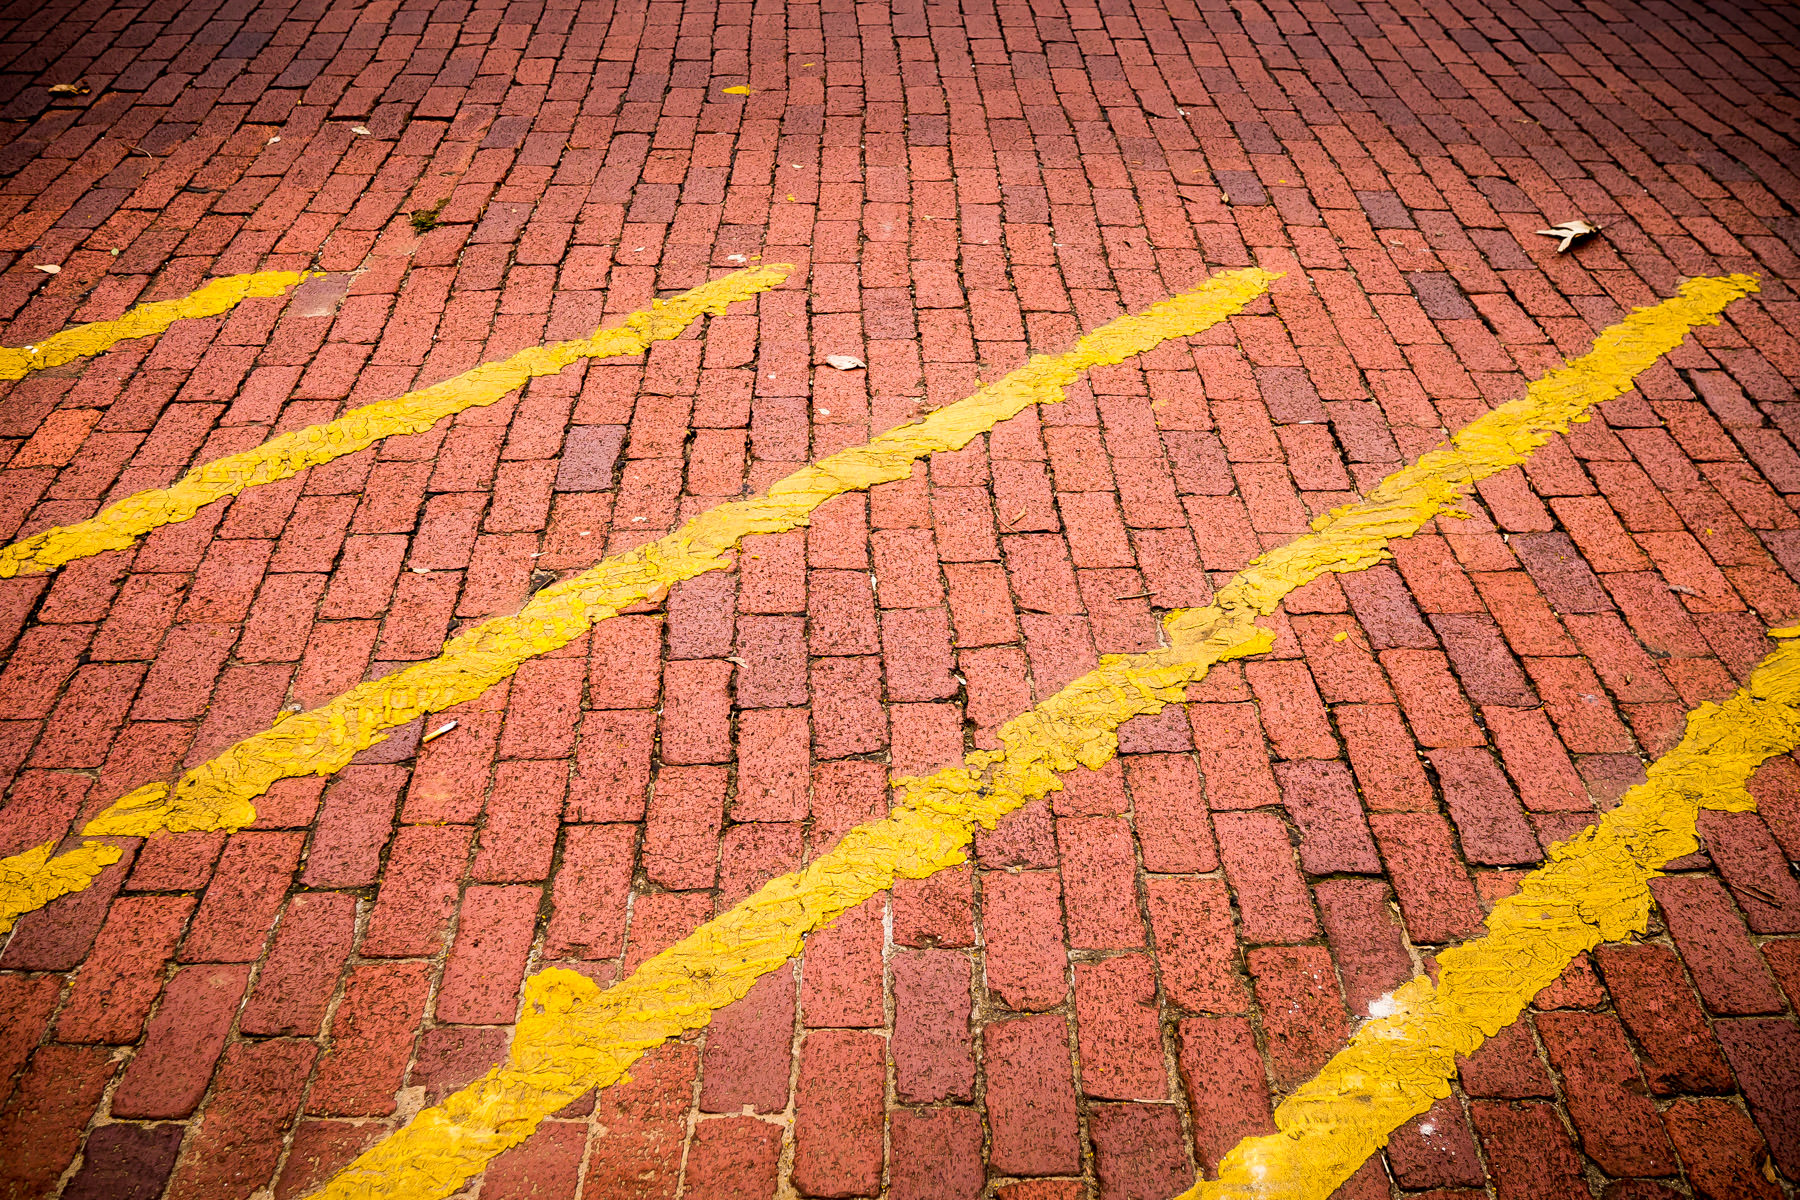 Yellow stripes painted sloppily on a brick street in Downtown Nacogdoches, Texas.